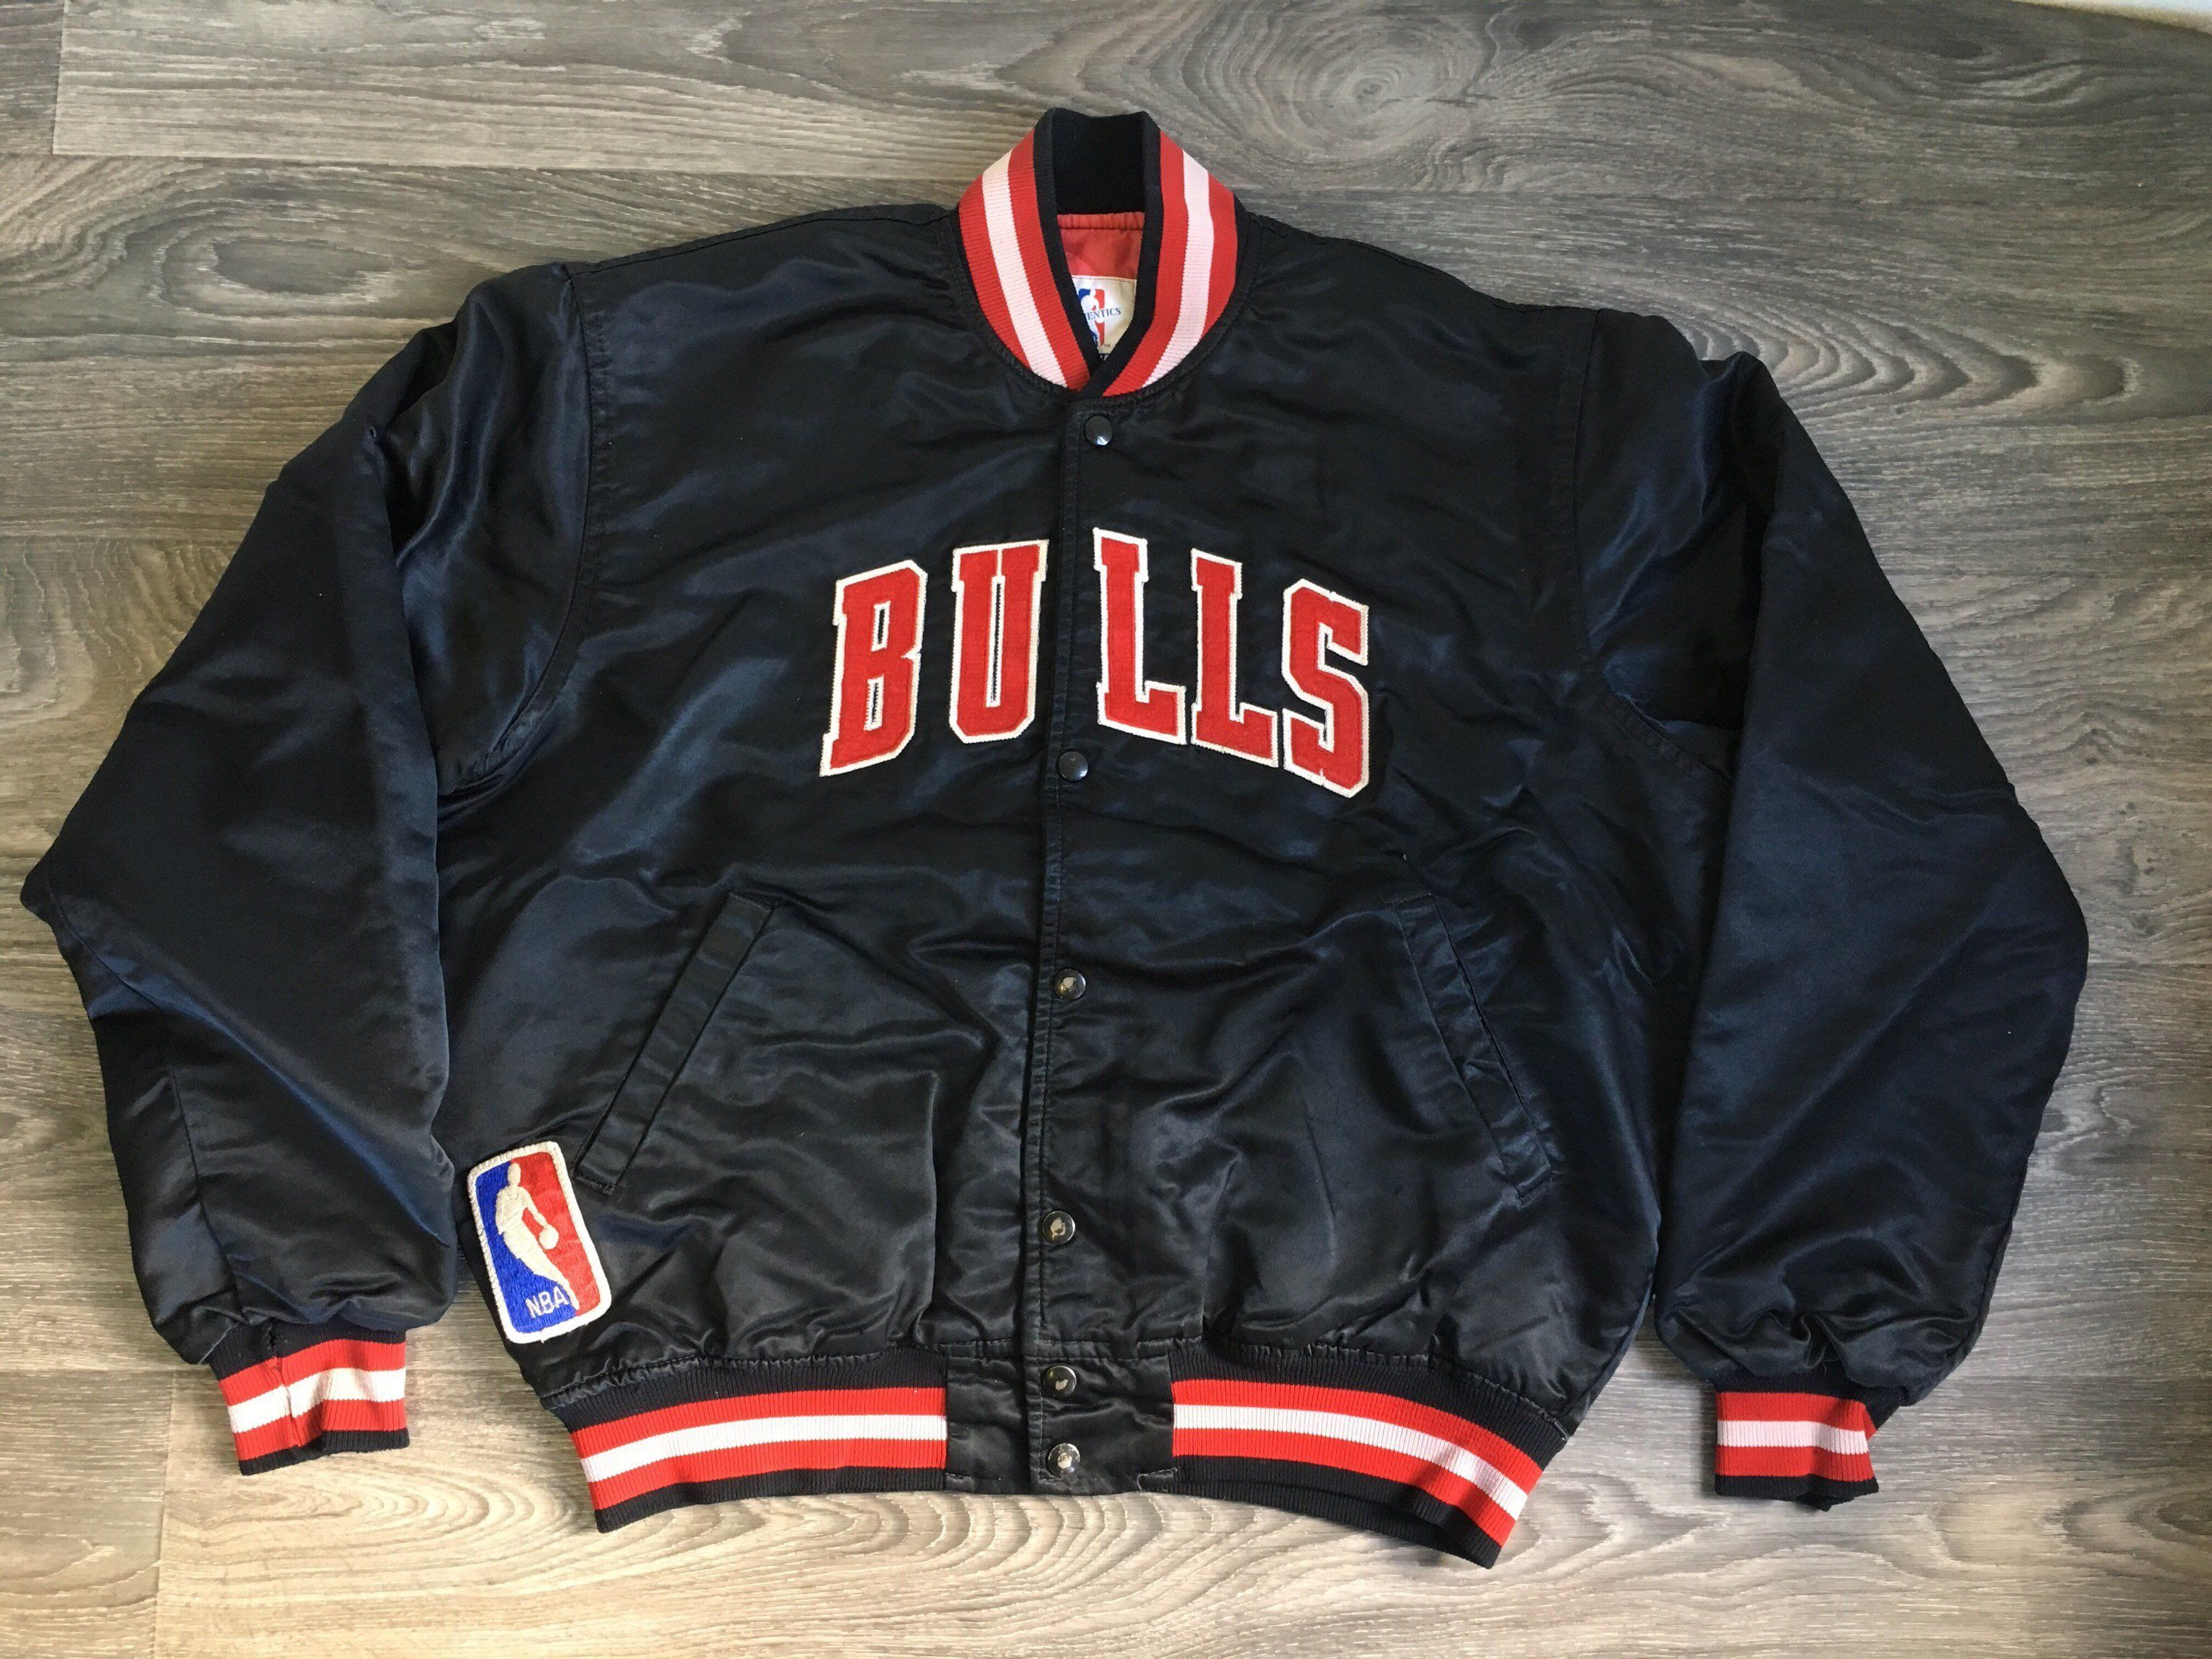 878a4631558212 Vintage CHICAGO BULLS STARTER Jacket 80s Black Satin Quilted Snap Sewn  Patch Lettering Michael Jordan Basketball NbA UsA Men s Large by  sweetVTGtshirt on ...